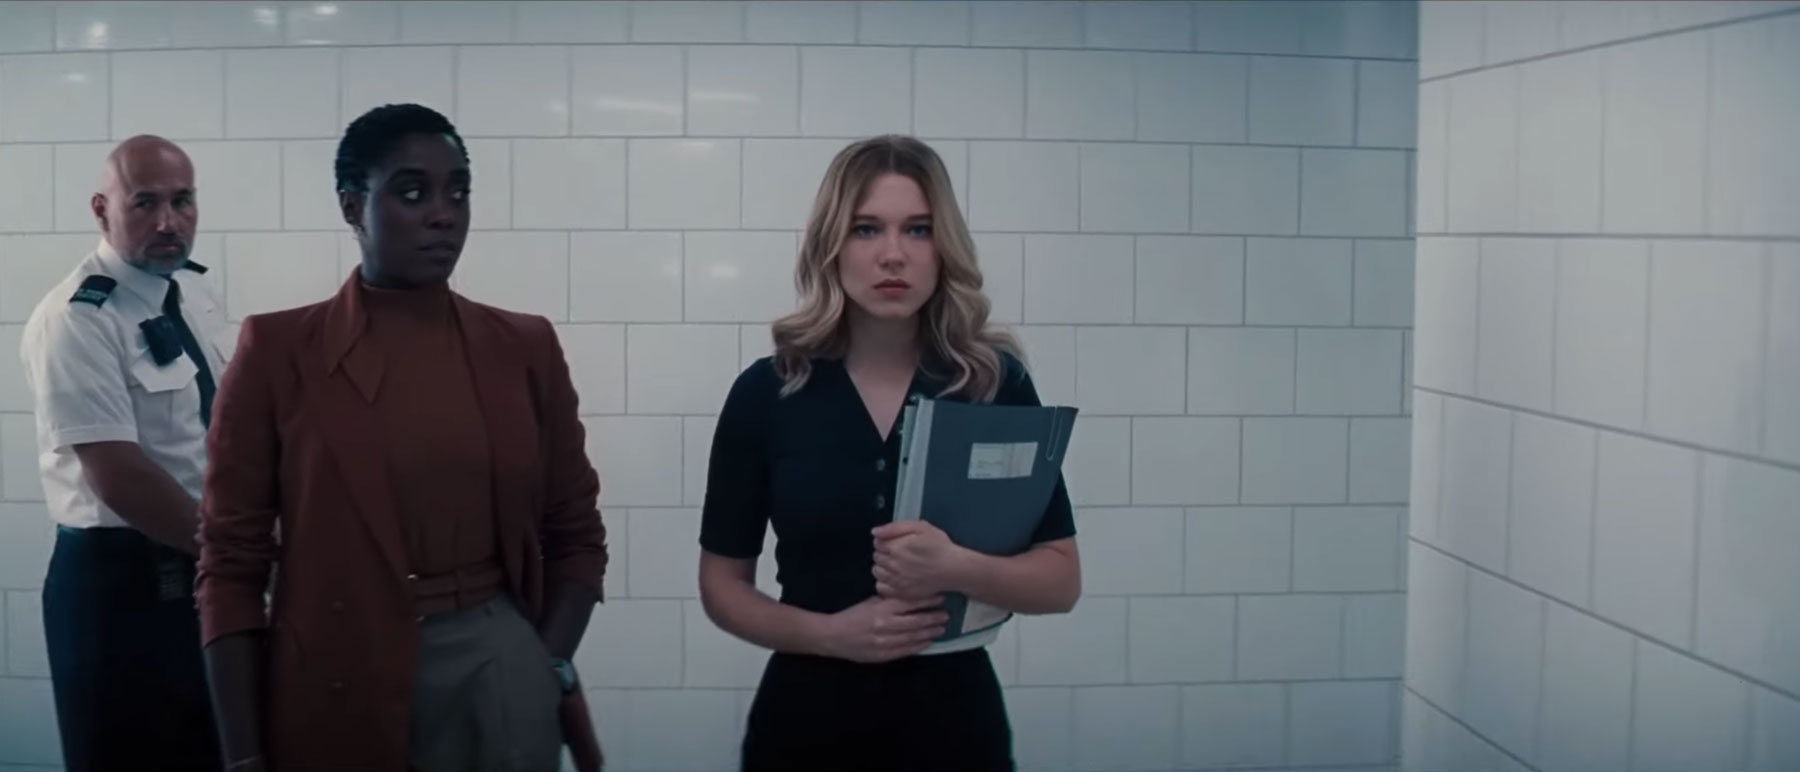 Léa Seydoux is back in No Time To Die